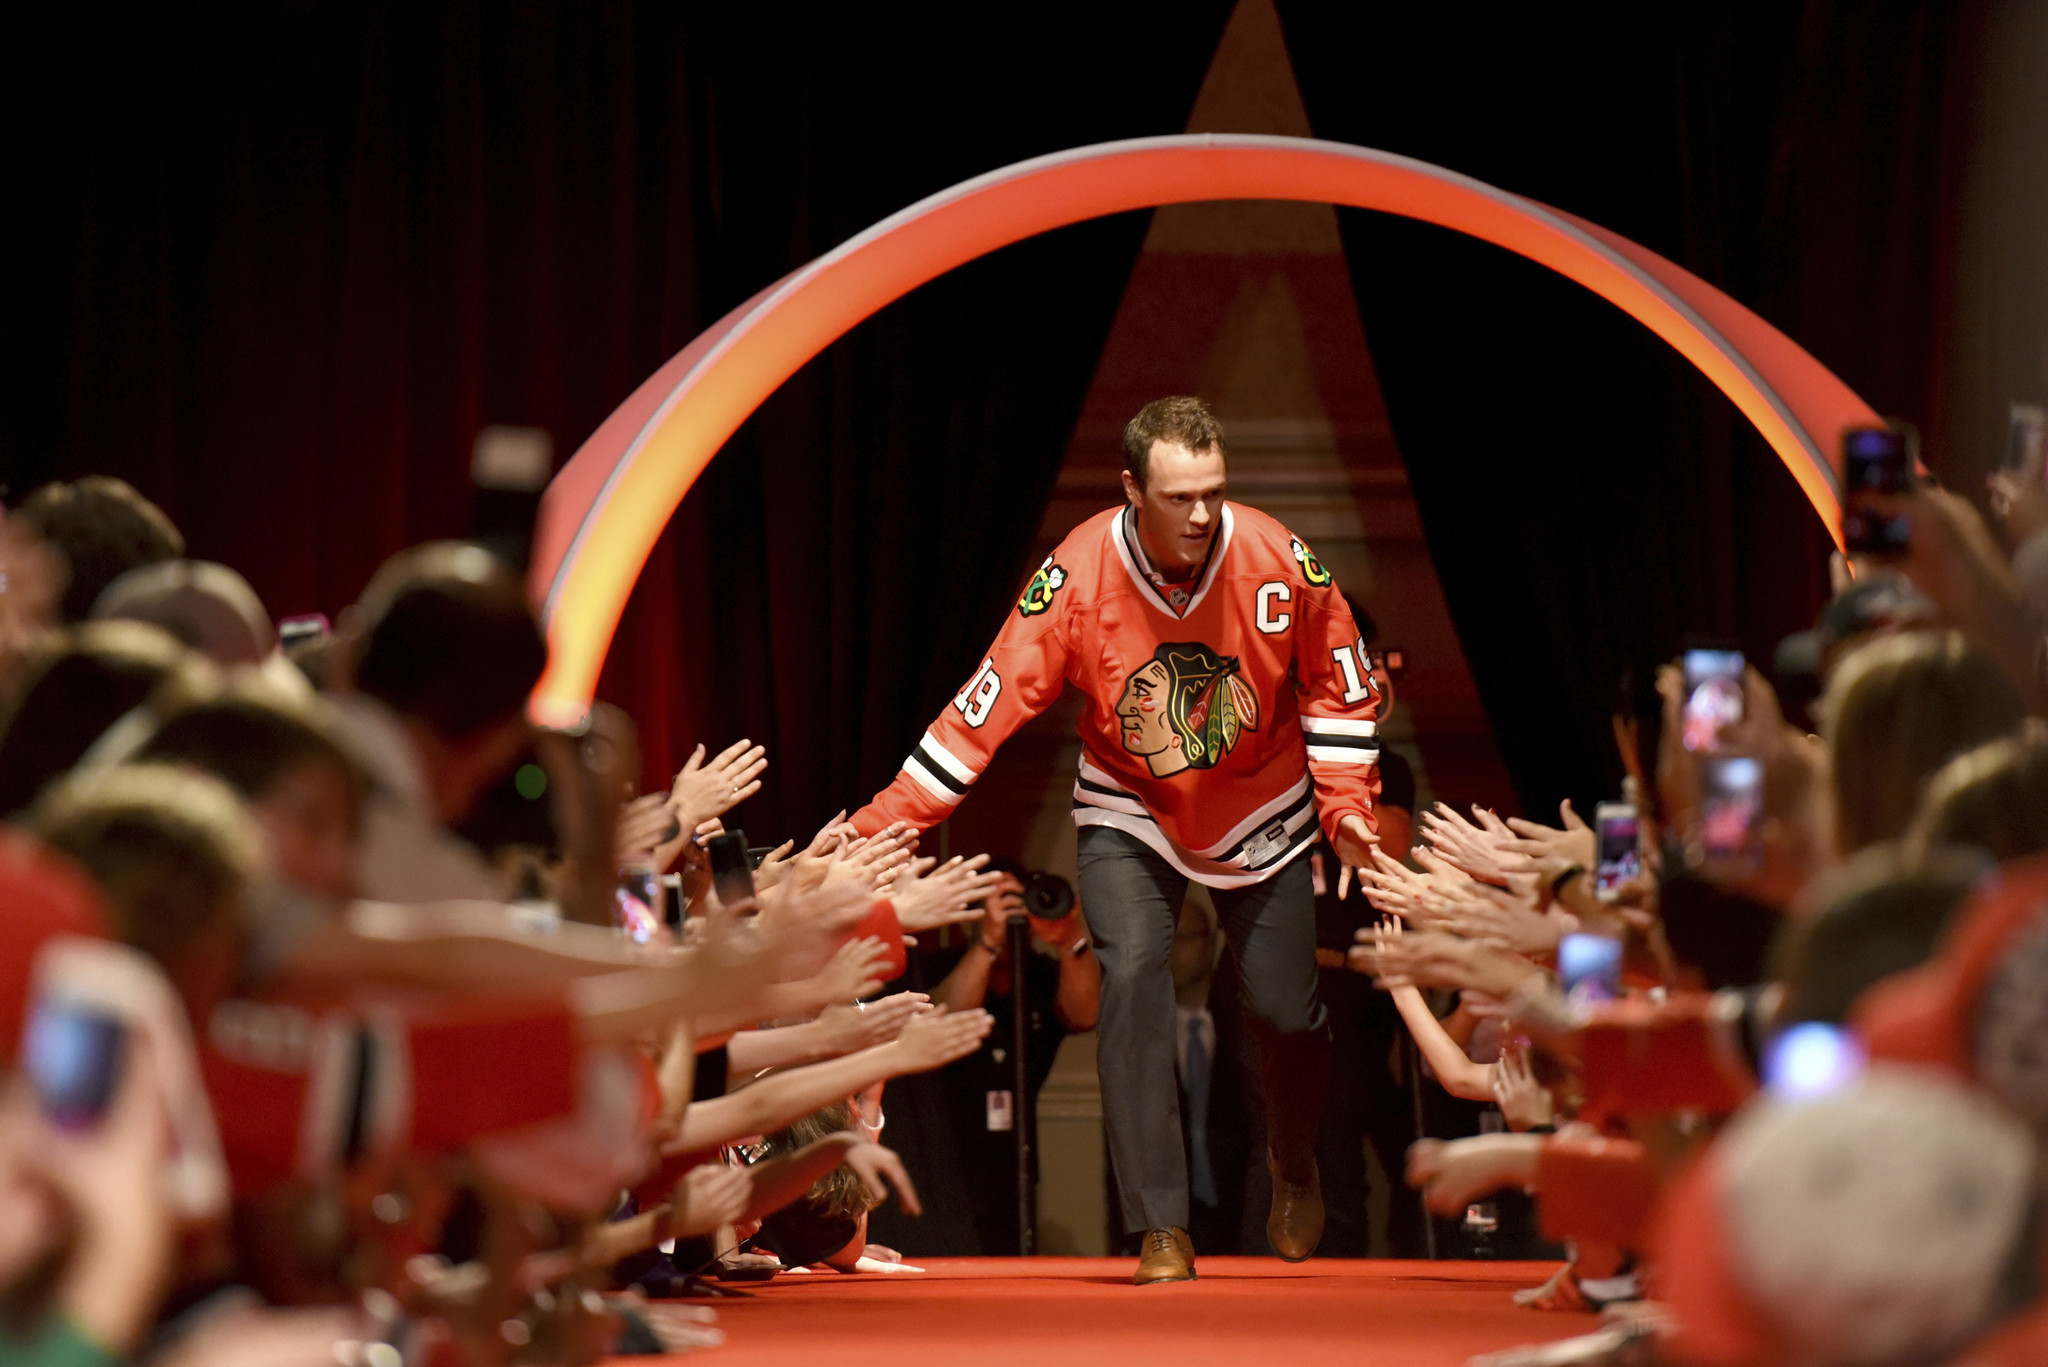 blackhawks release tv schedule for upcoming season - chicago tribune